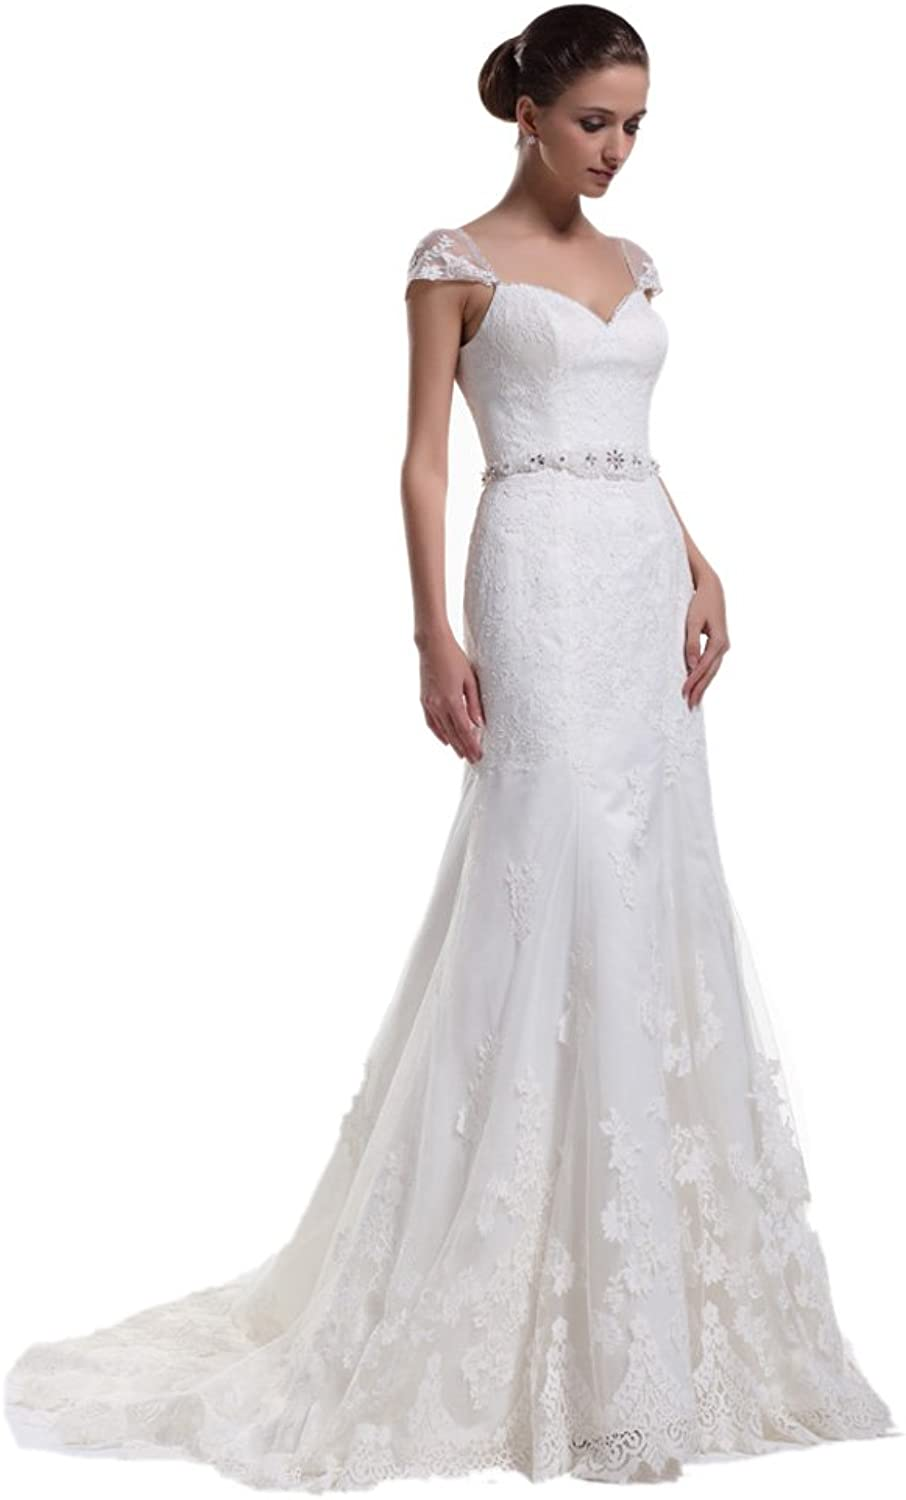 Dearta Women's ALine VNeck Court Train Lace Wedding Dresses